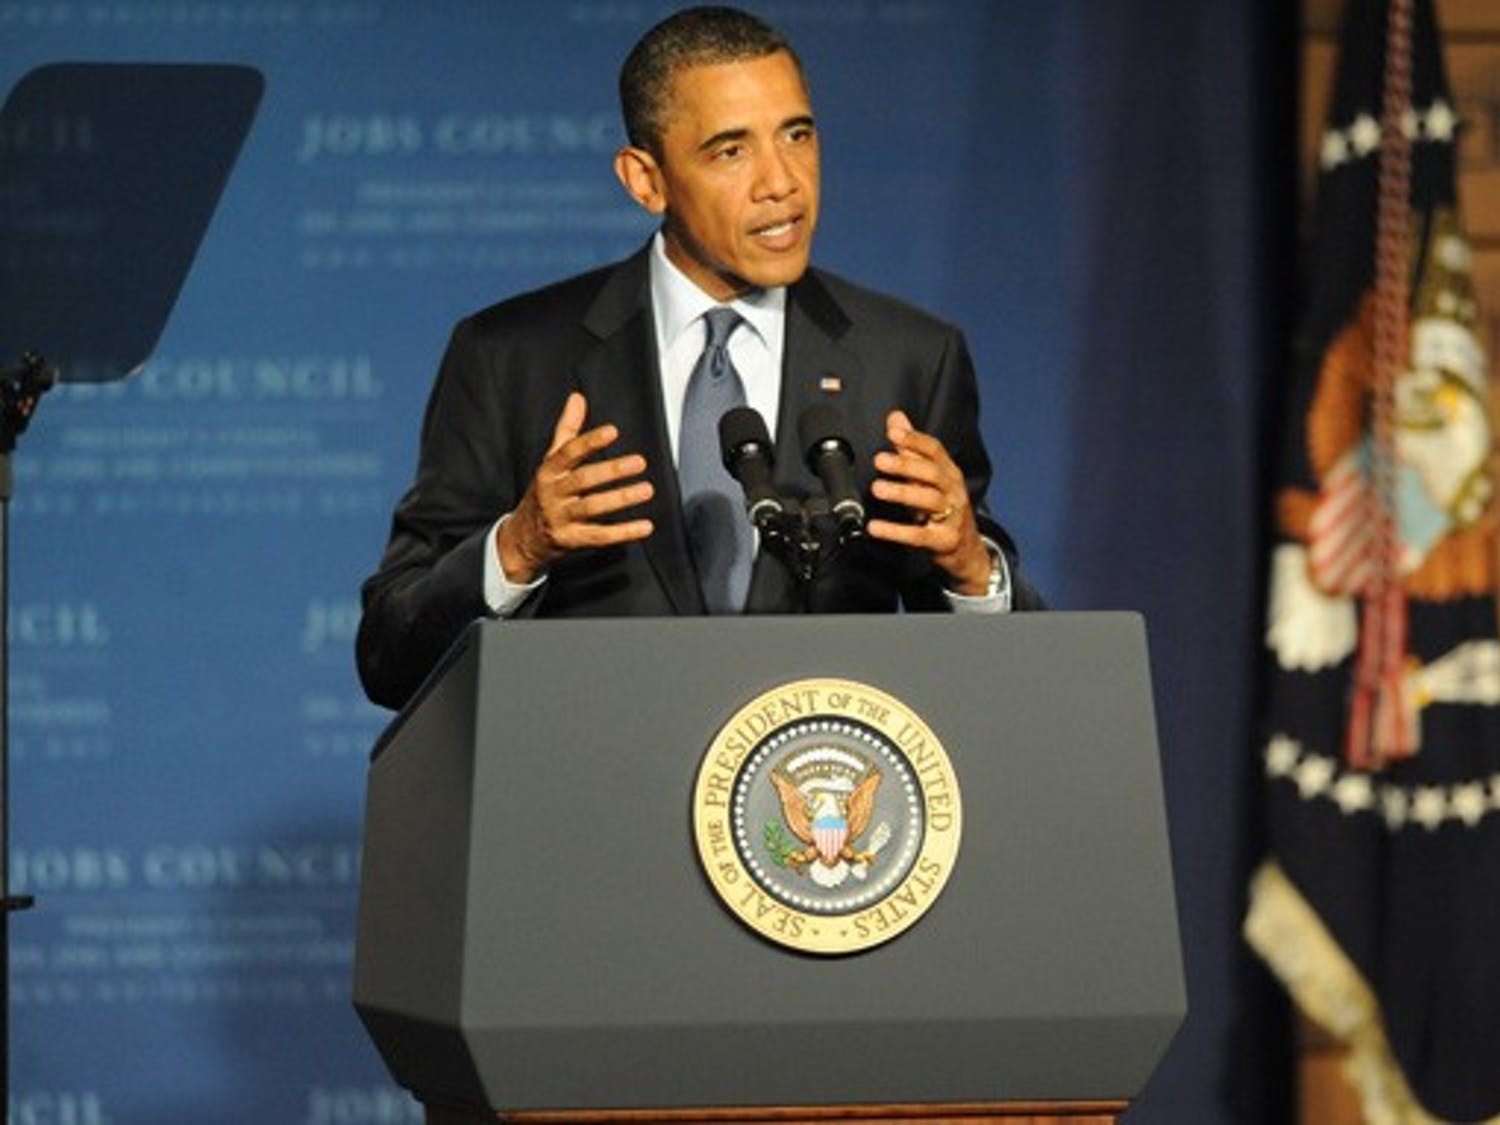 Speaking before an audience at Cree, Inc., President Barack Obama outlined ideas to stimulate economic growth.